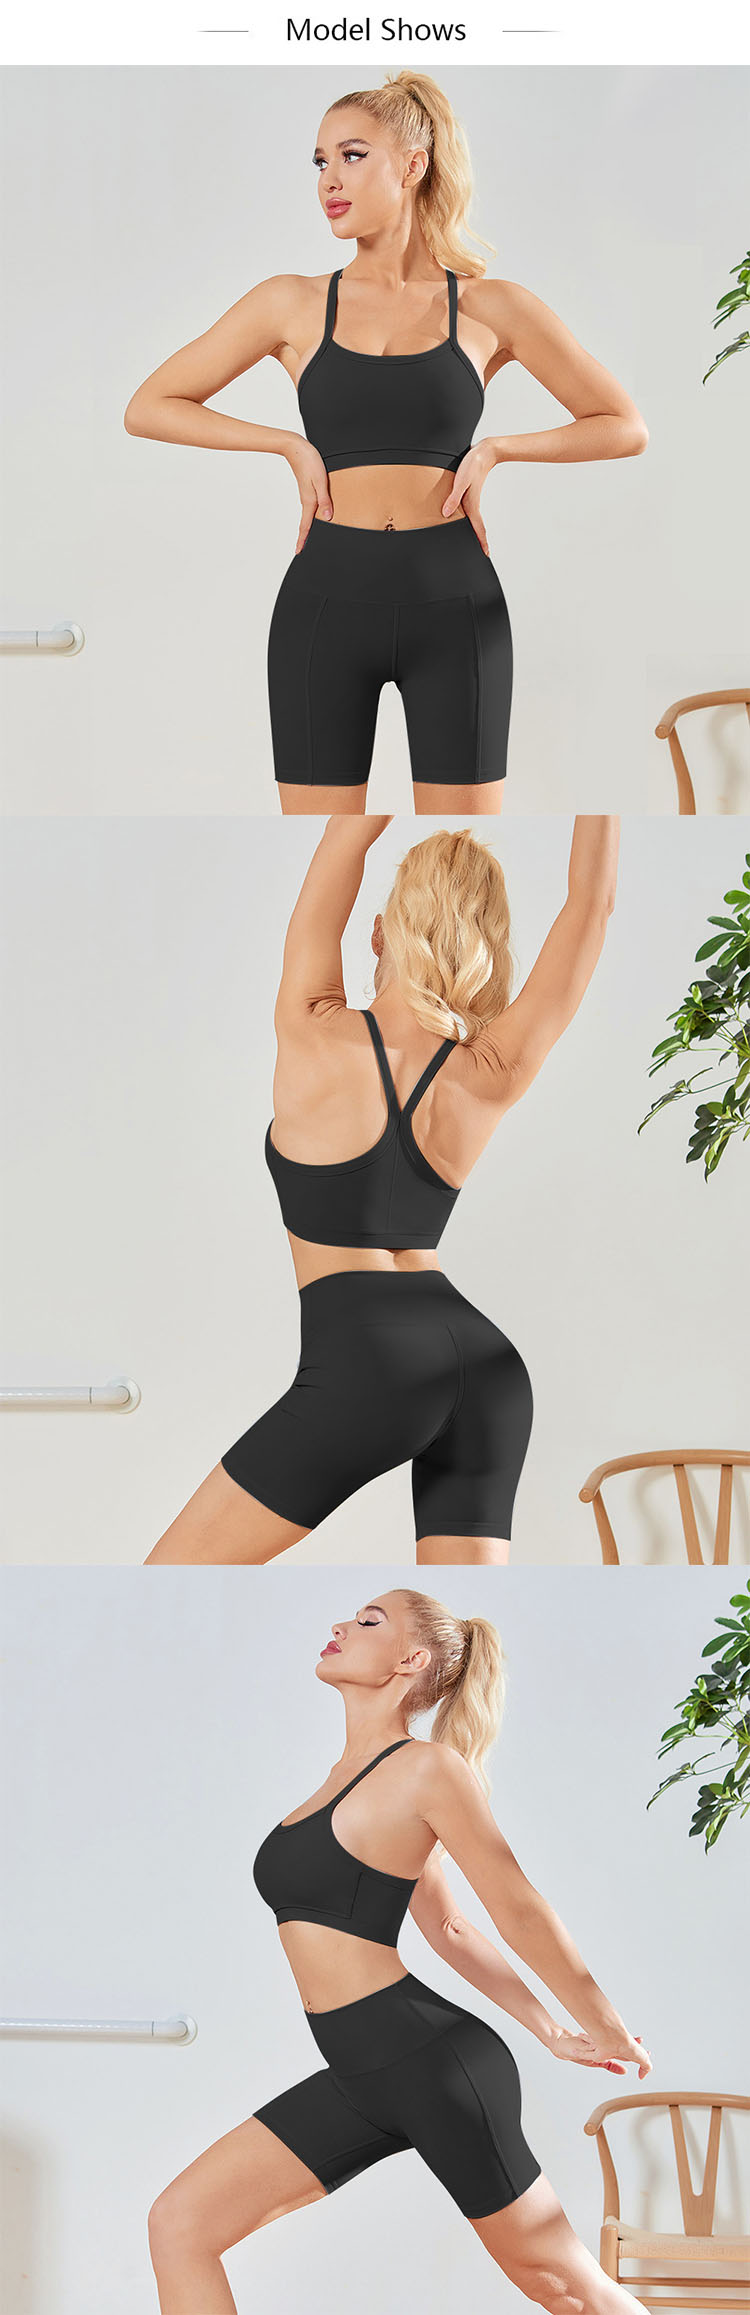 Leggings hot pants has a soft and smooth hand feel and is very skin-friendly.